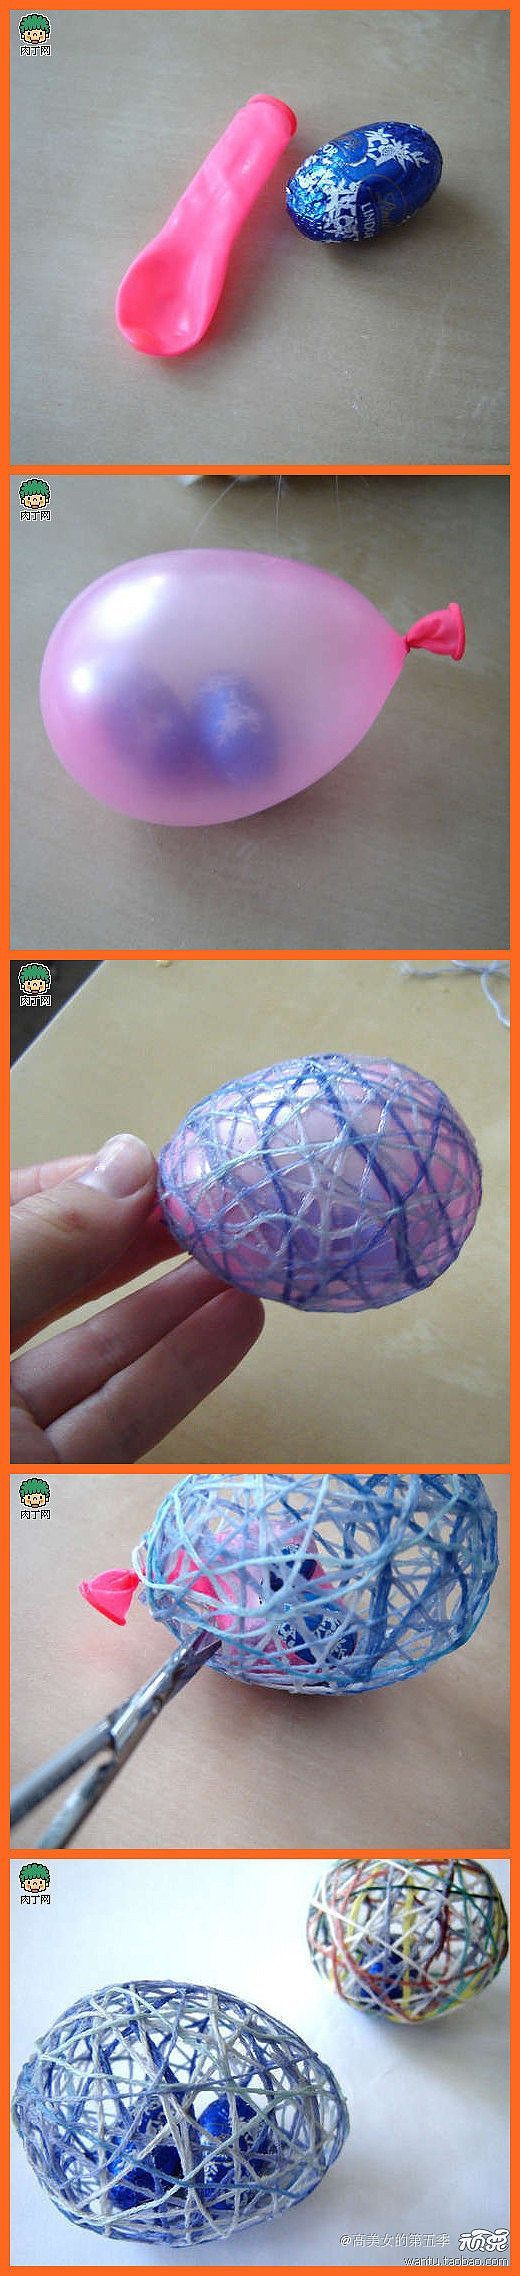 DIY Easy Easter Project